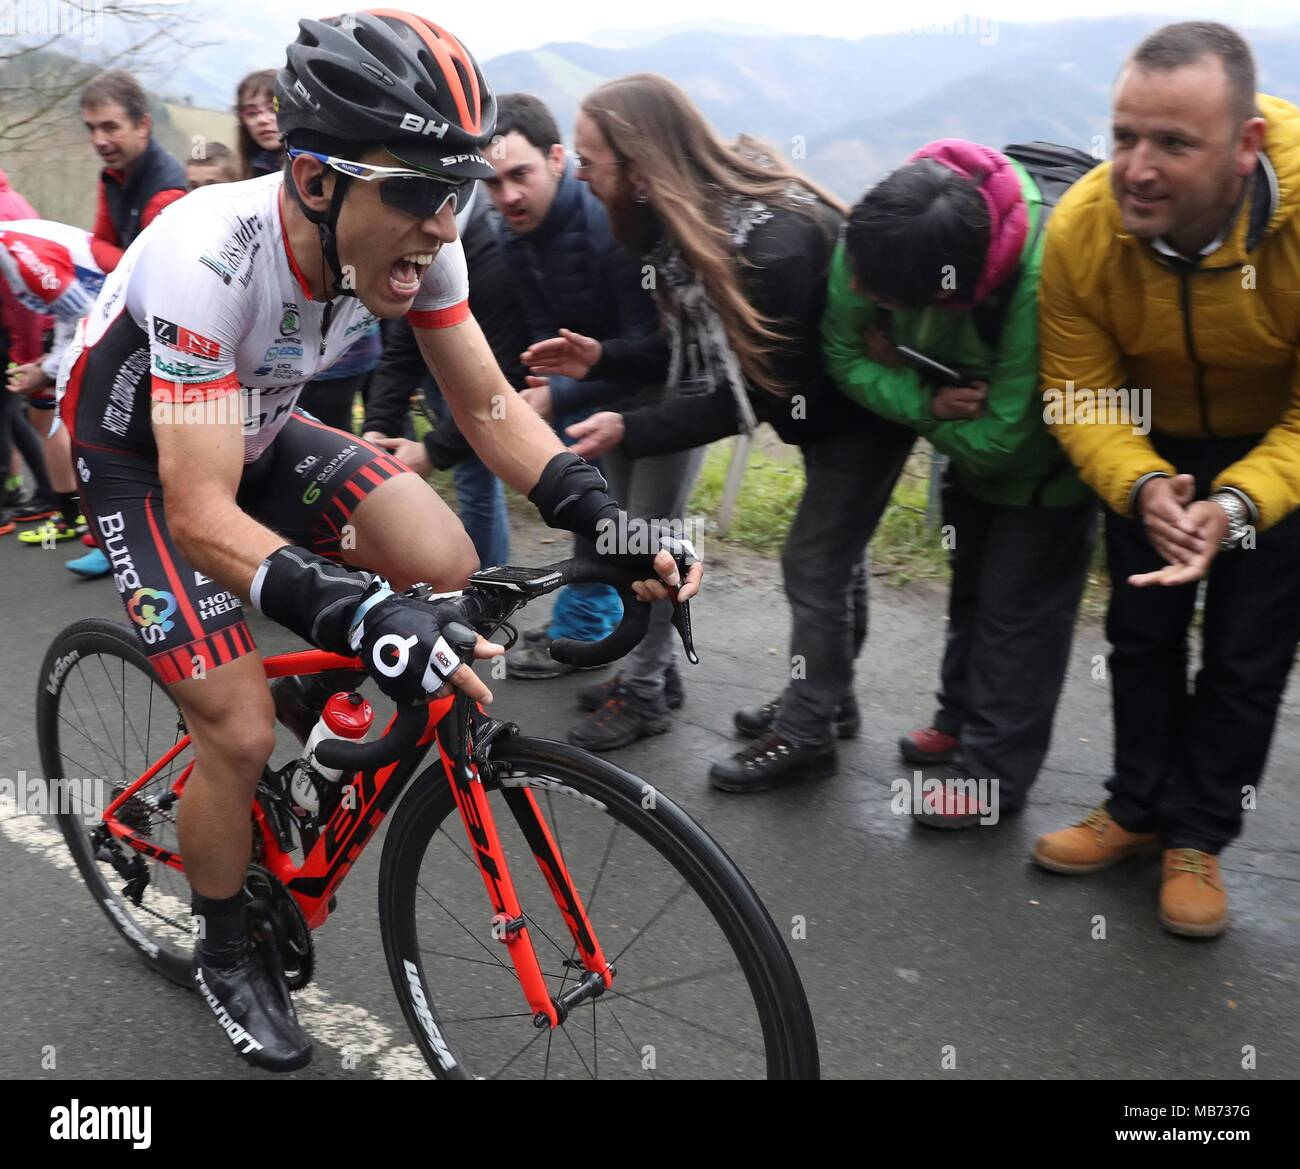 ed10e3022 Spanish cyclist Ibai Salas of Burgos-BH team in action during the sixth  stage of